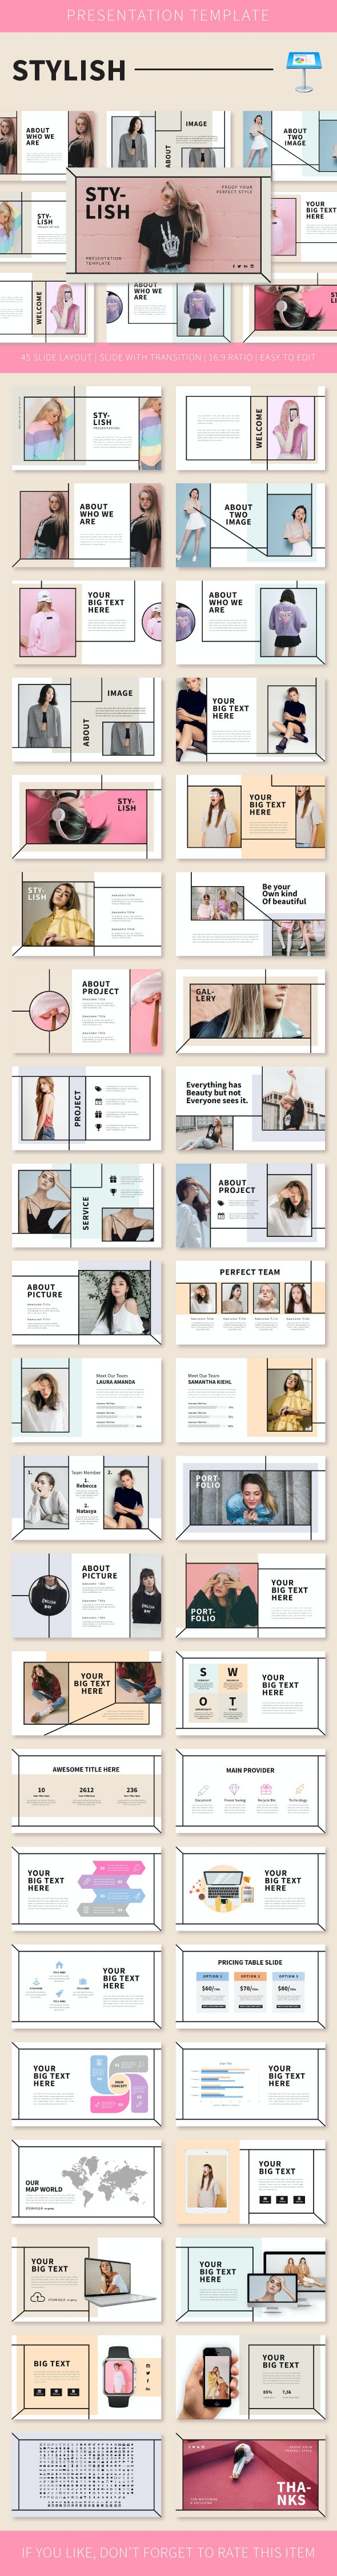 Stylish Keynote Temp - Creative Keynote Templates